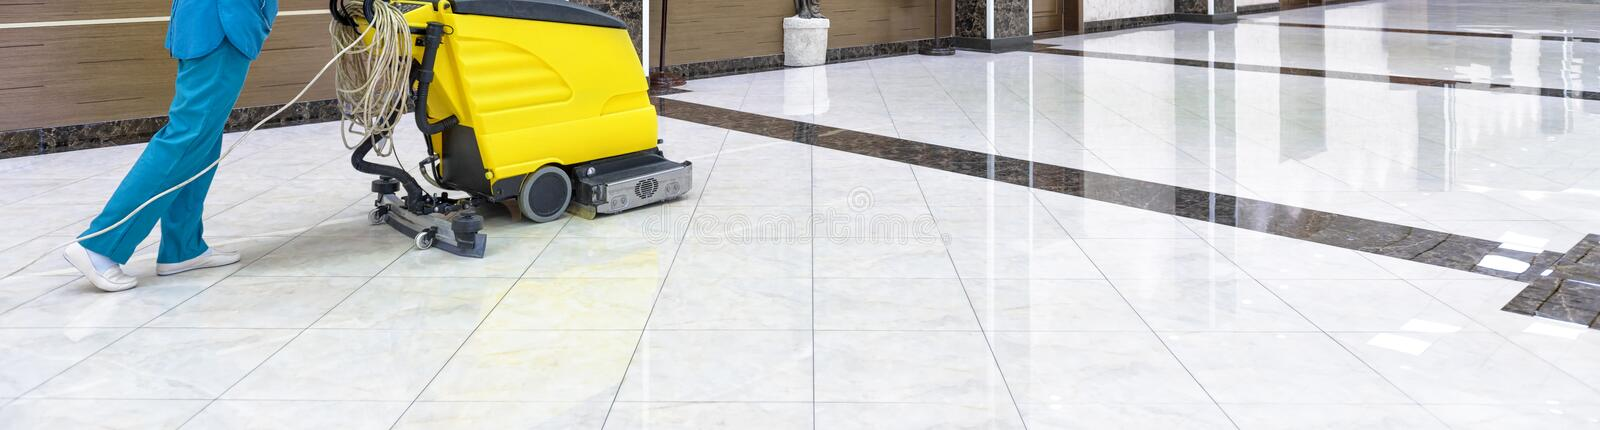 Floor care with washing machine in an office stock image